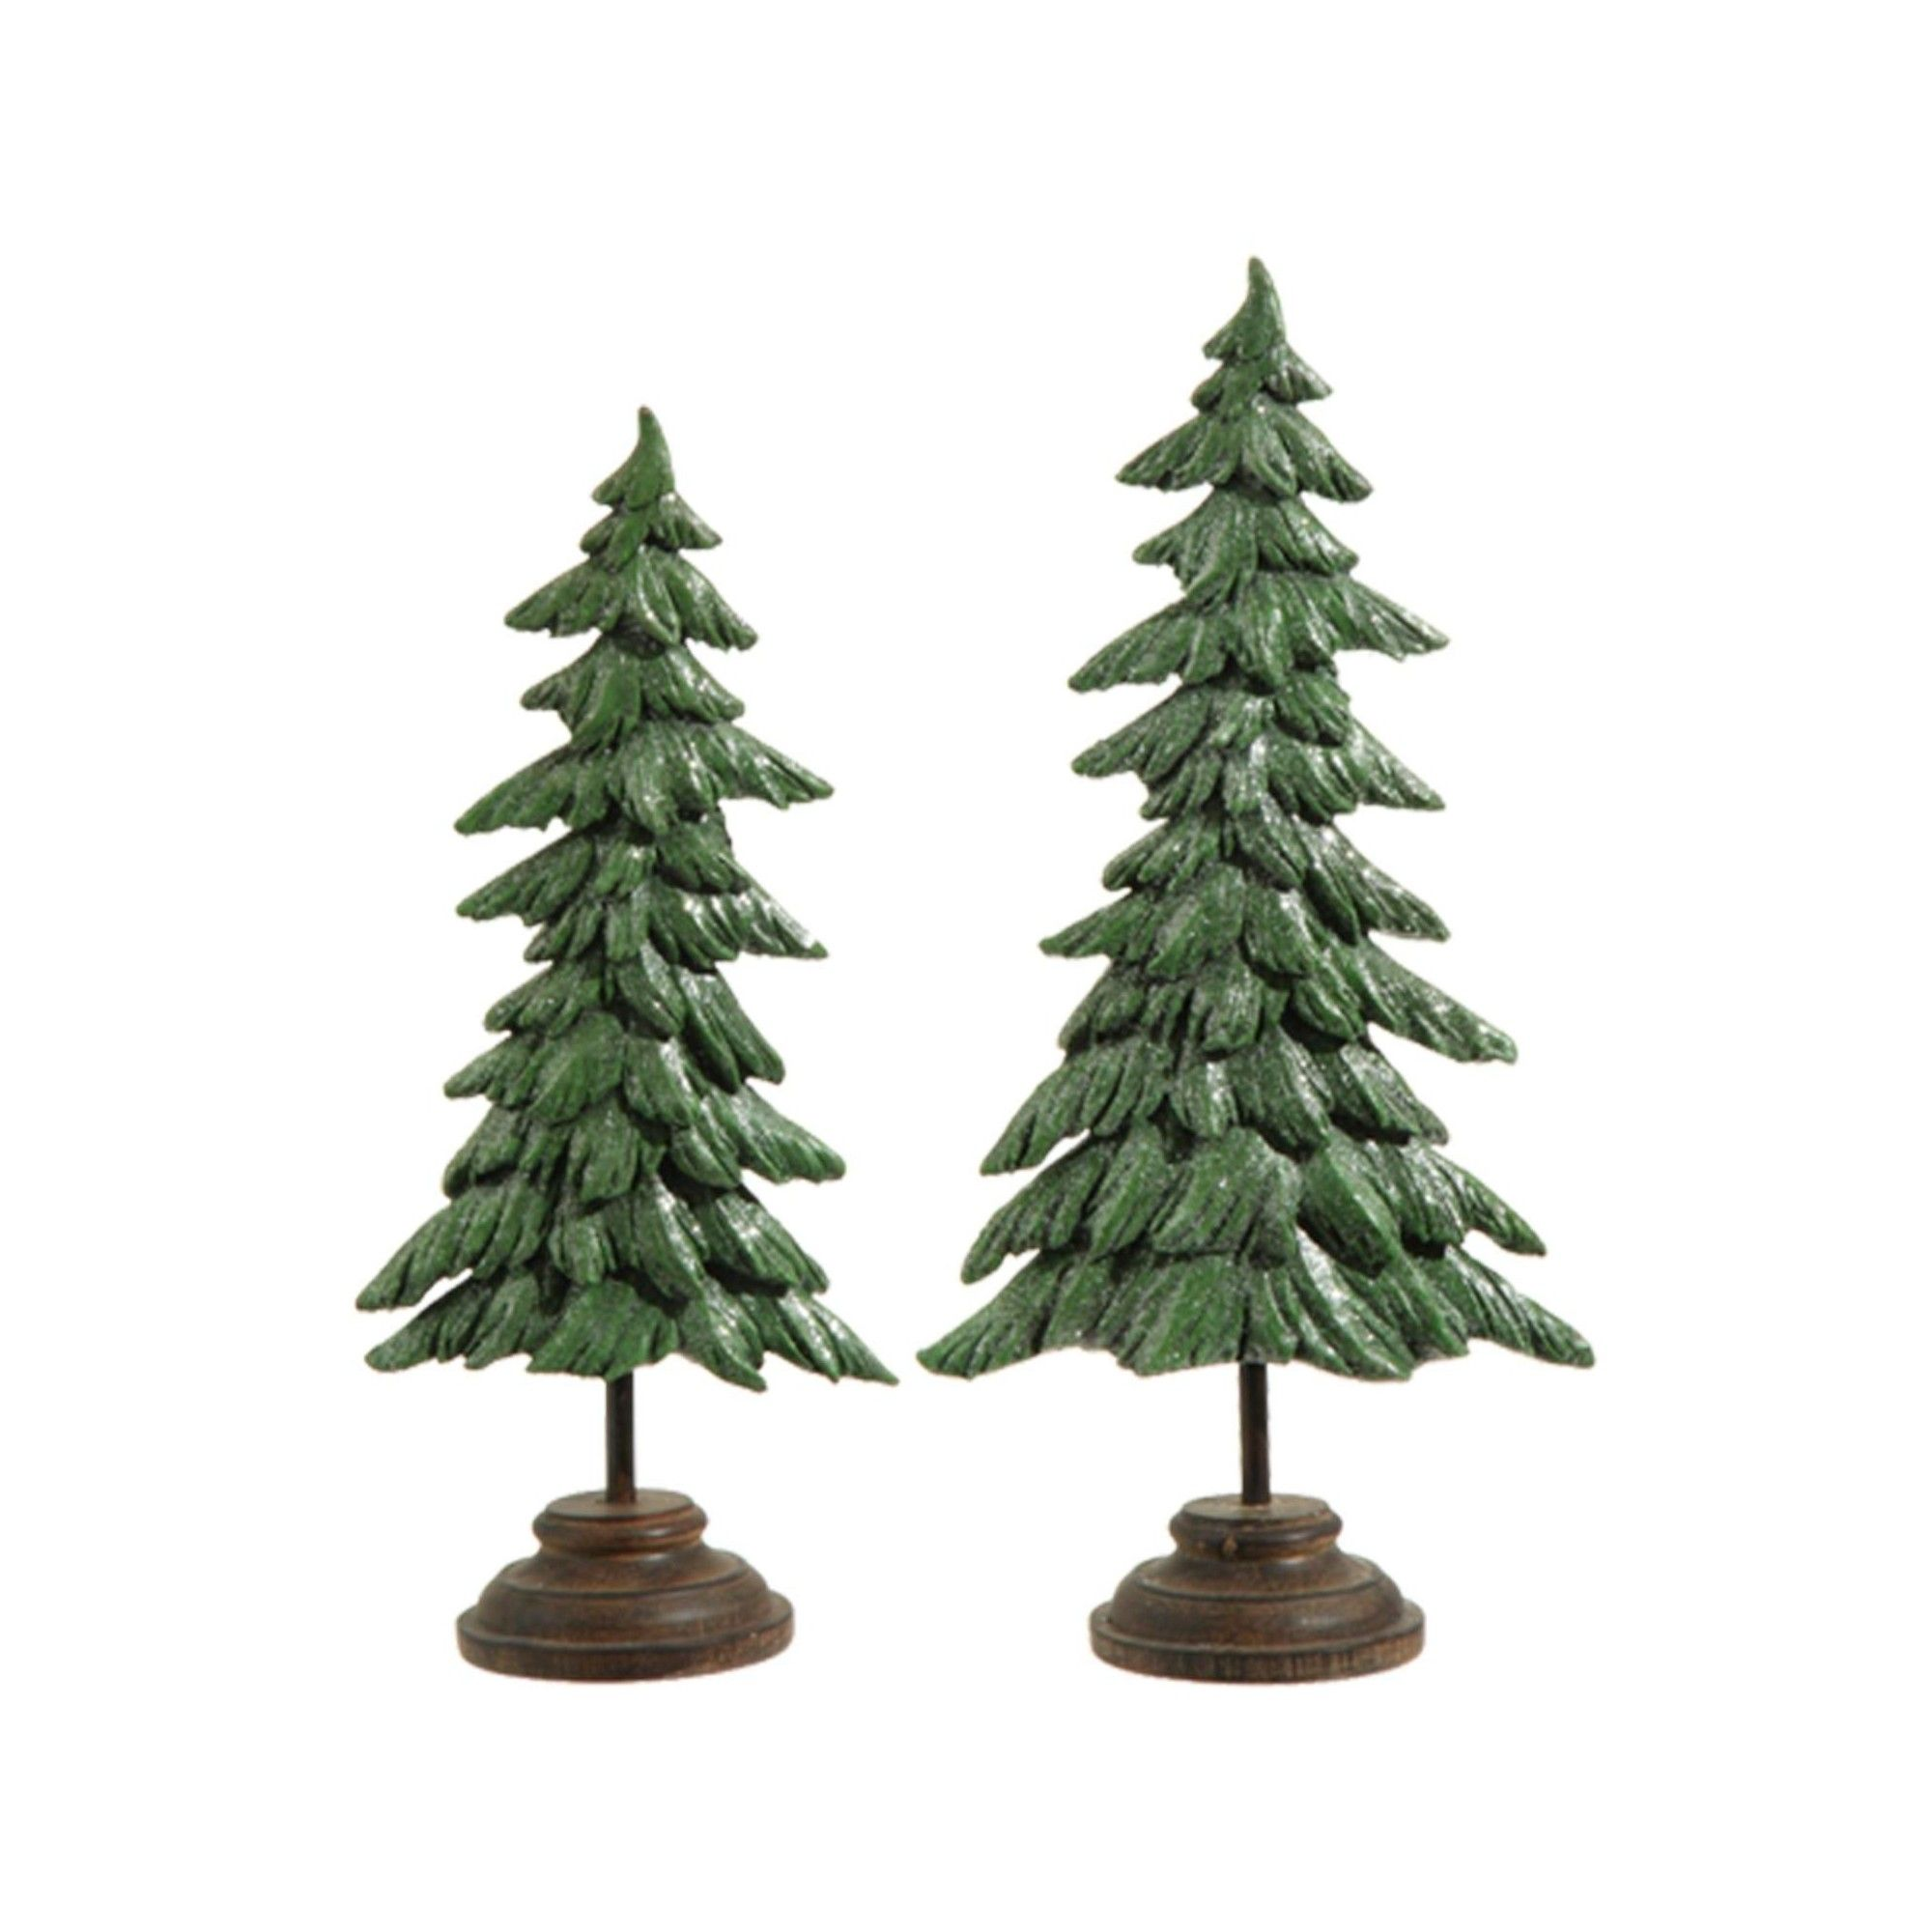 Carved Wooden Pine Trees set of 2